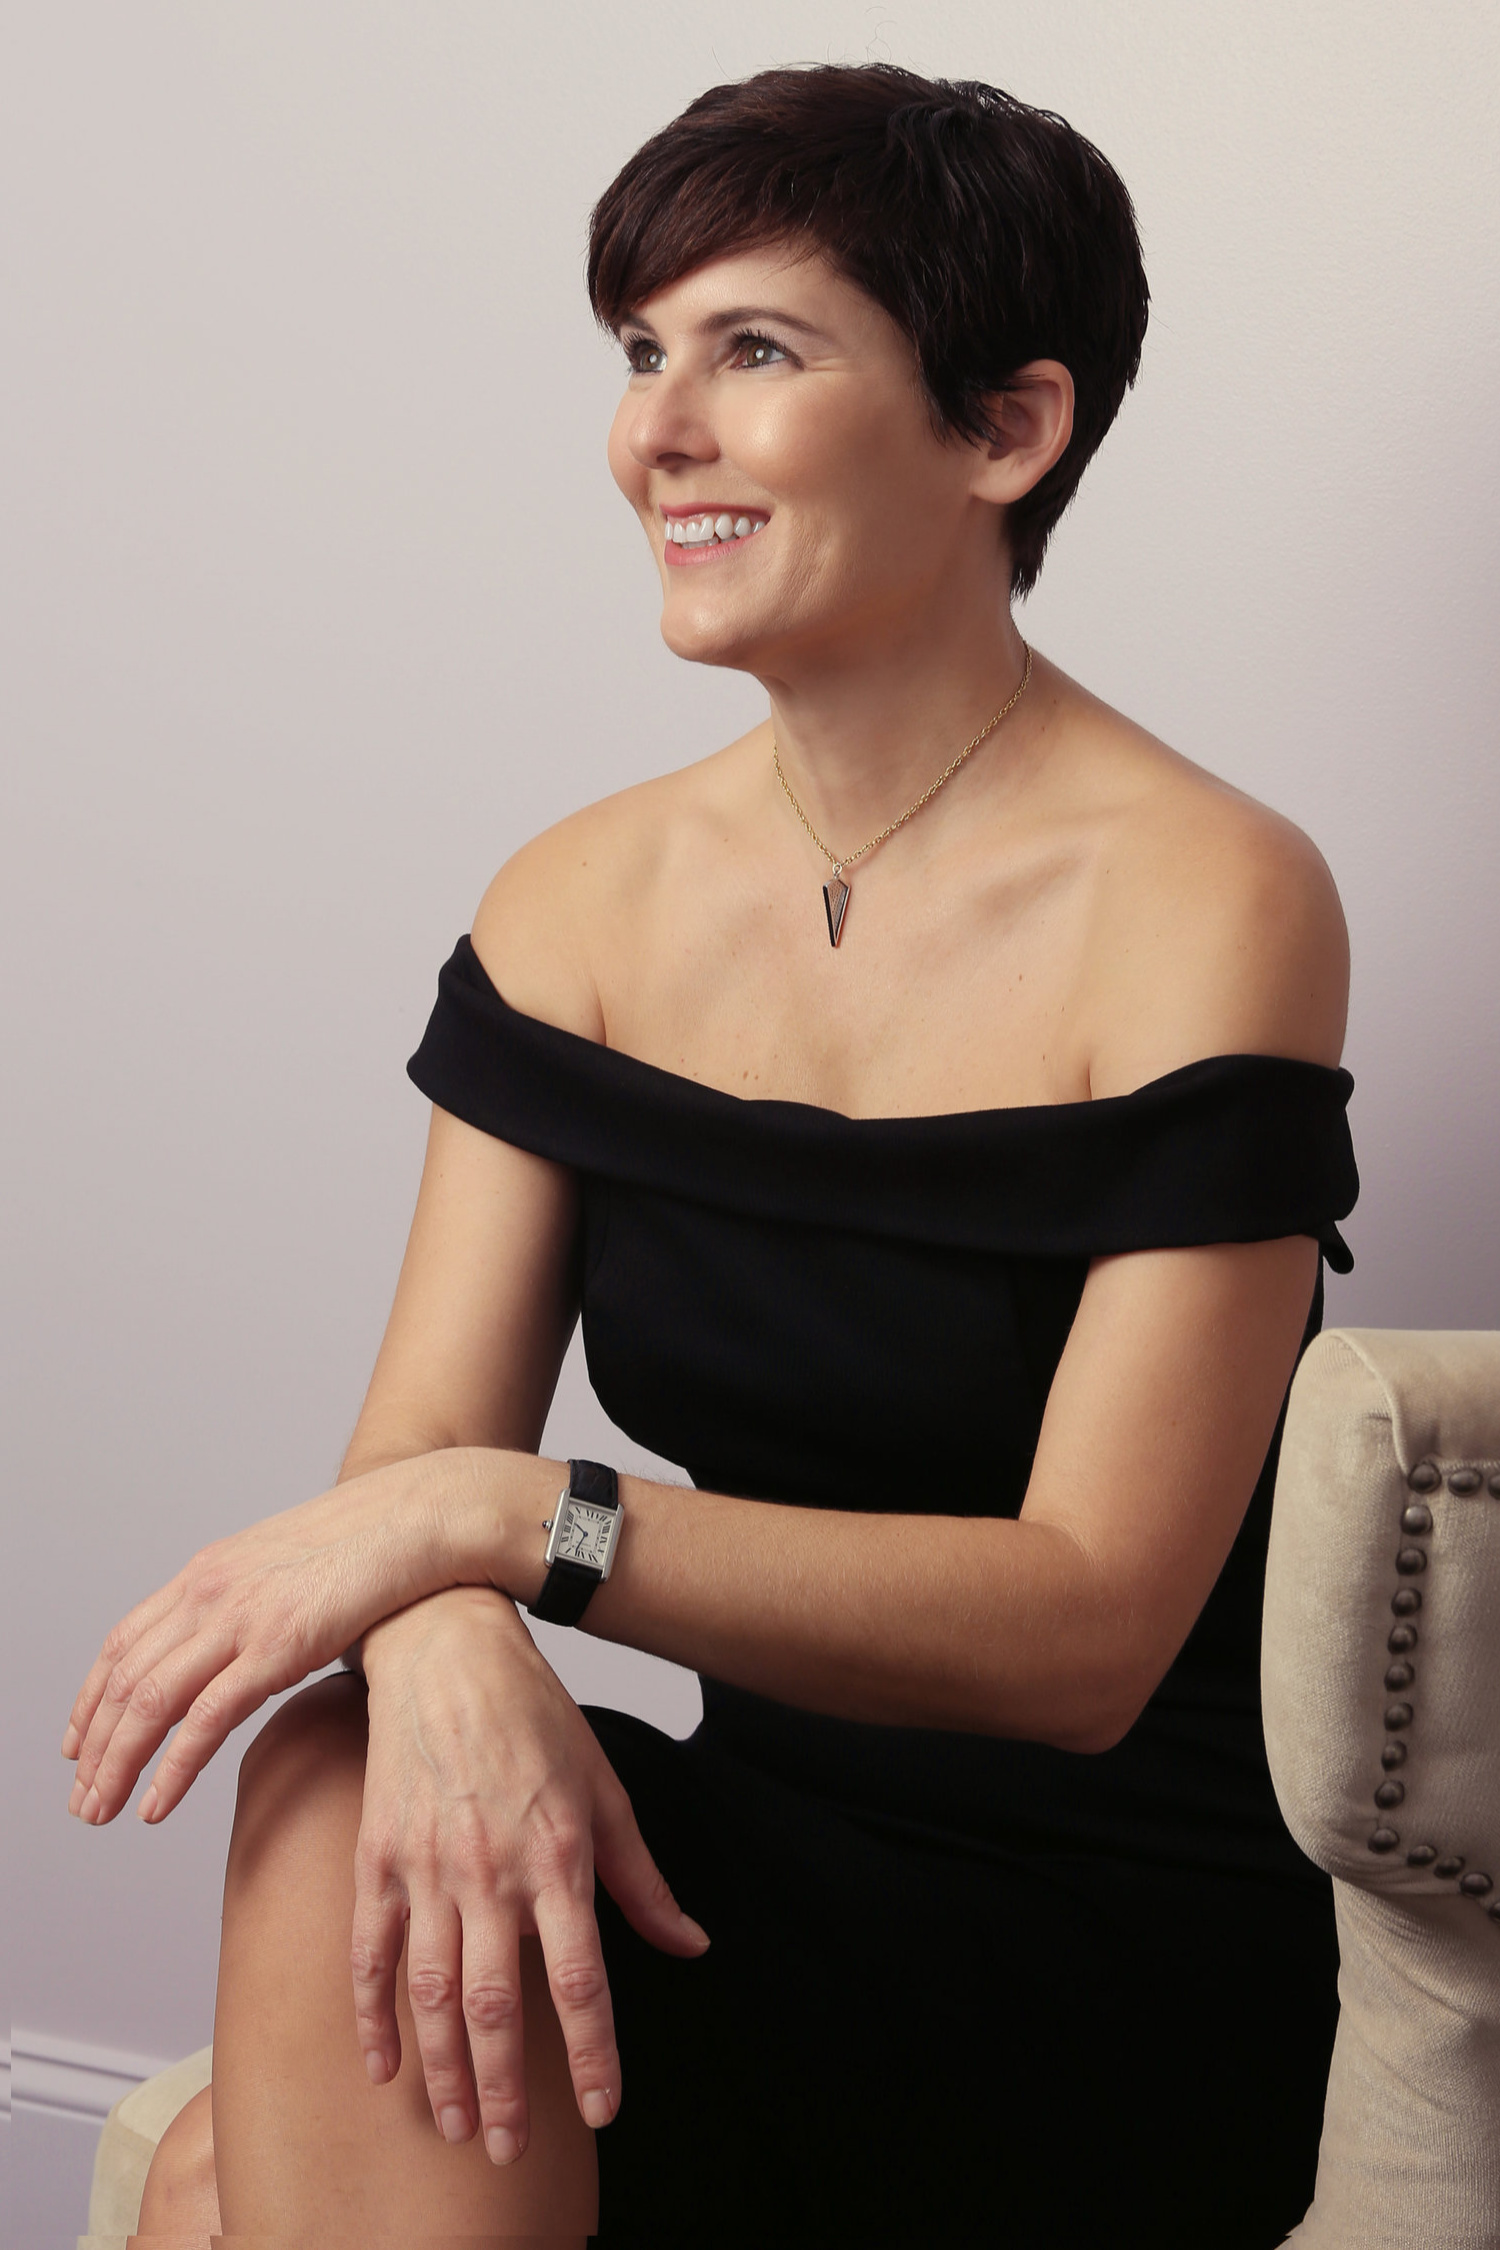 Nina Milano, Founder and CEO